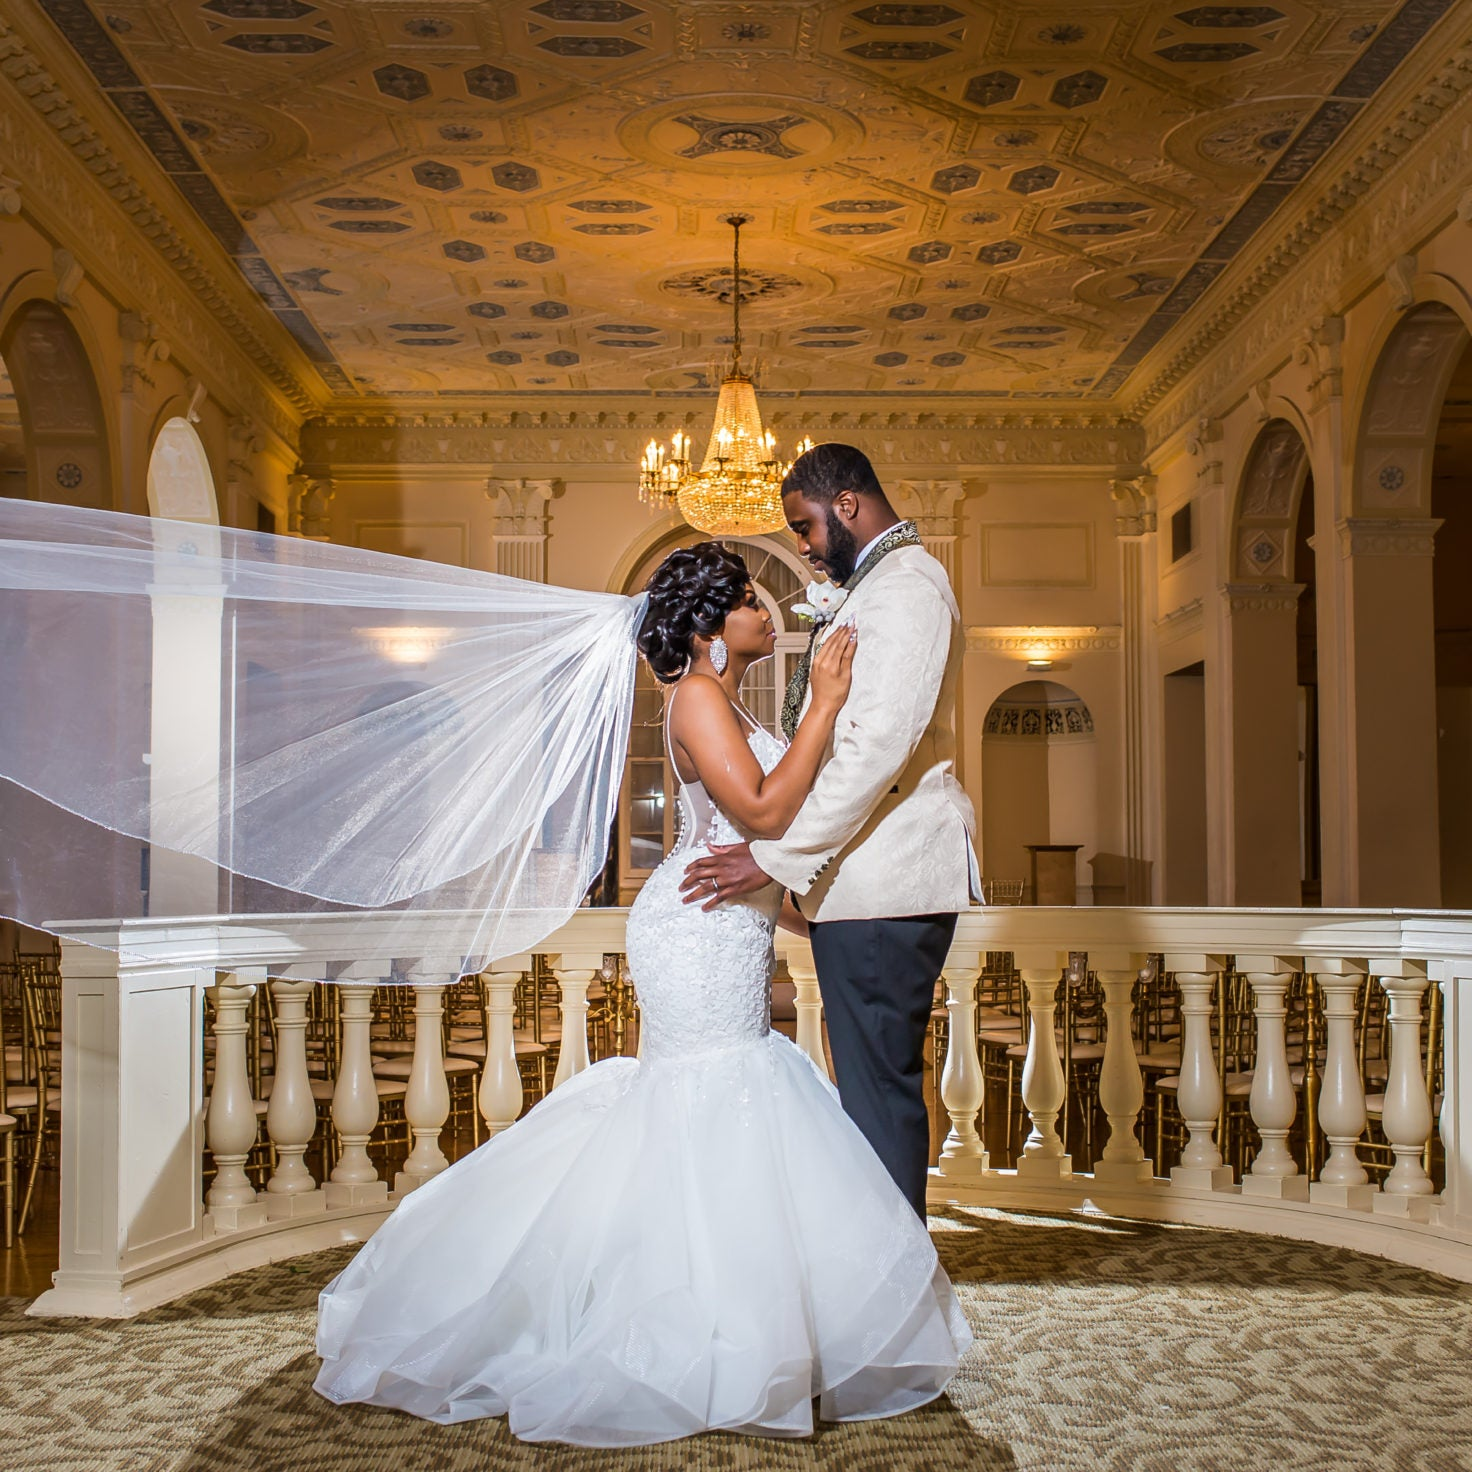 Bridal Bliss: Kendra and Jonathan Made Memories With Their Black Tie Ballroom Ceremony